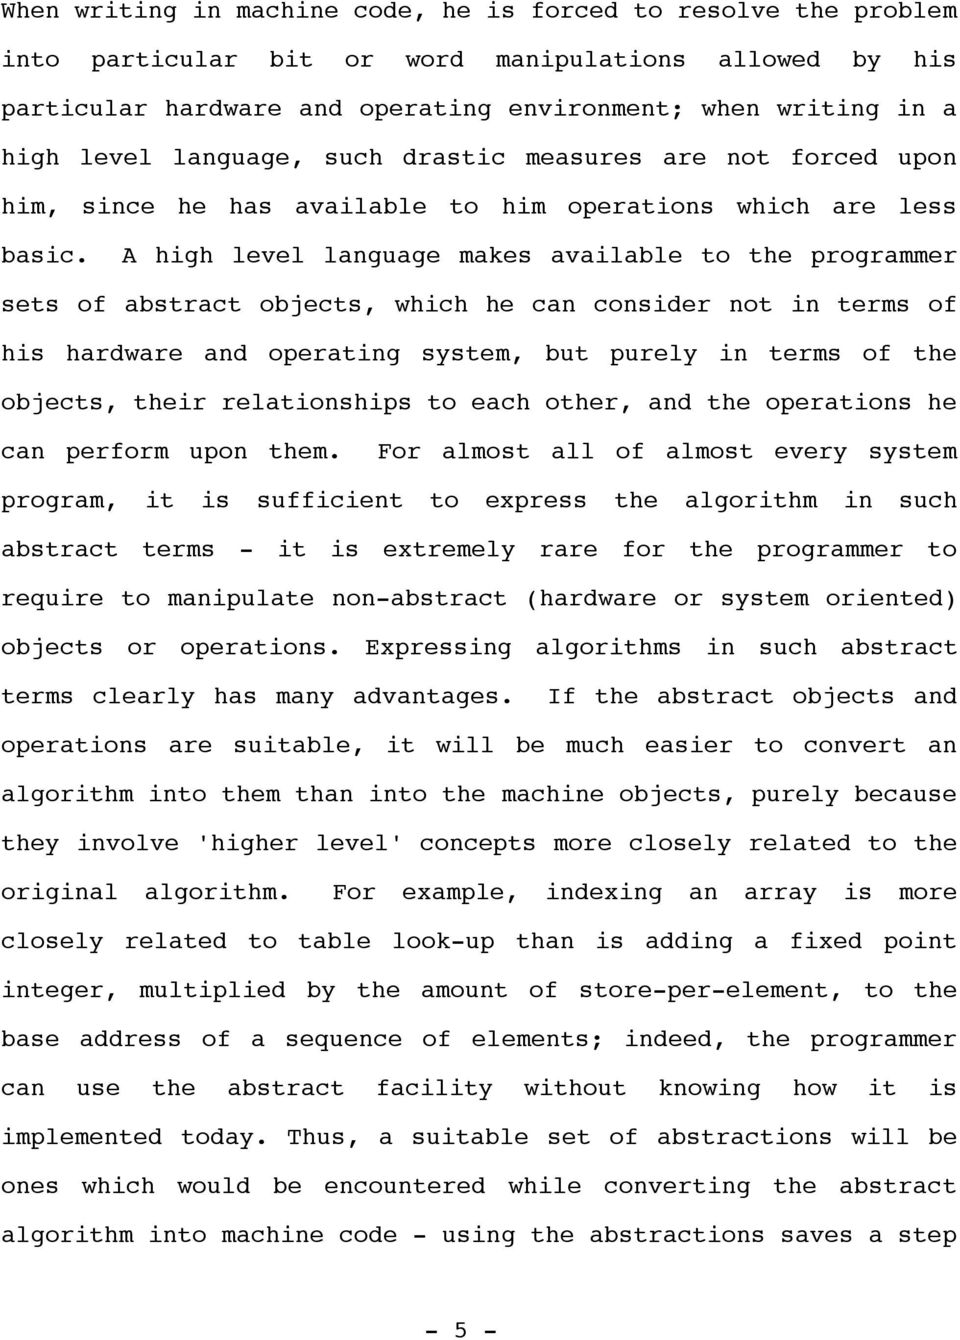 A high level language makes available to the programmer sets of abstract objects, which he can consider not in terms of his hardware and operating system, but purely in terms of the objects, their